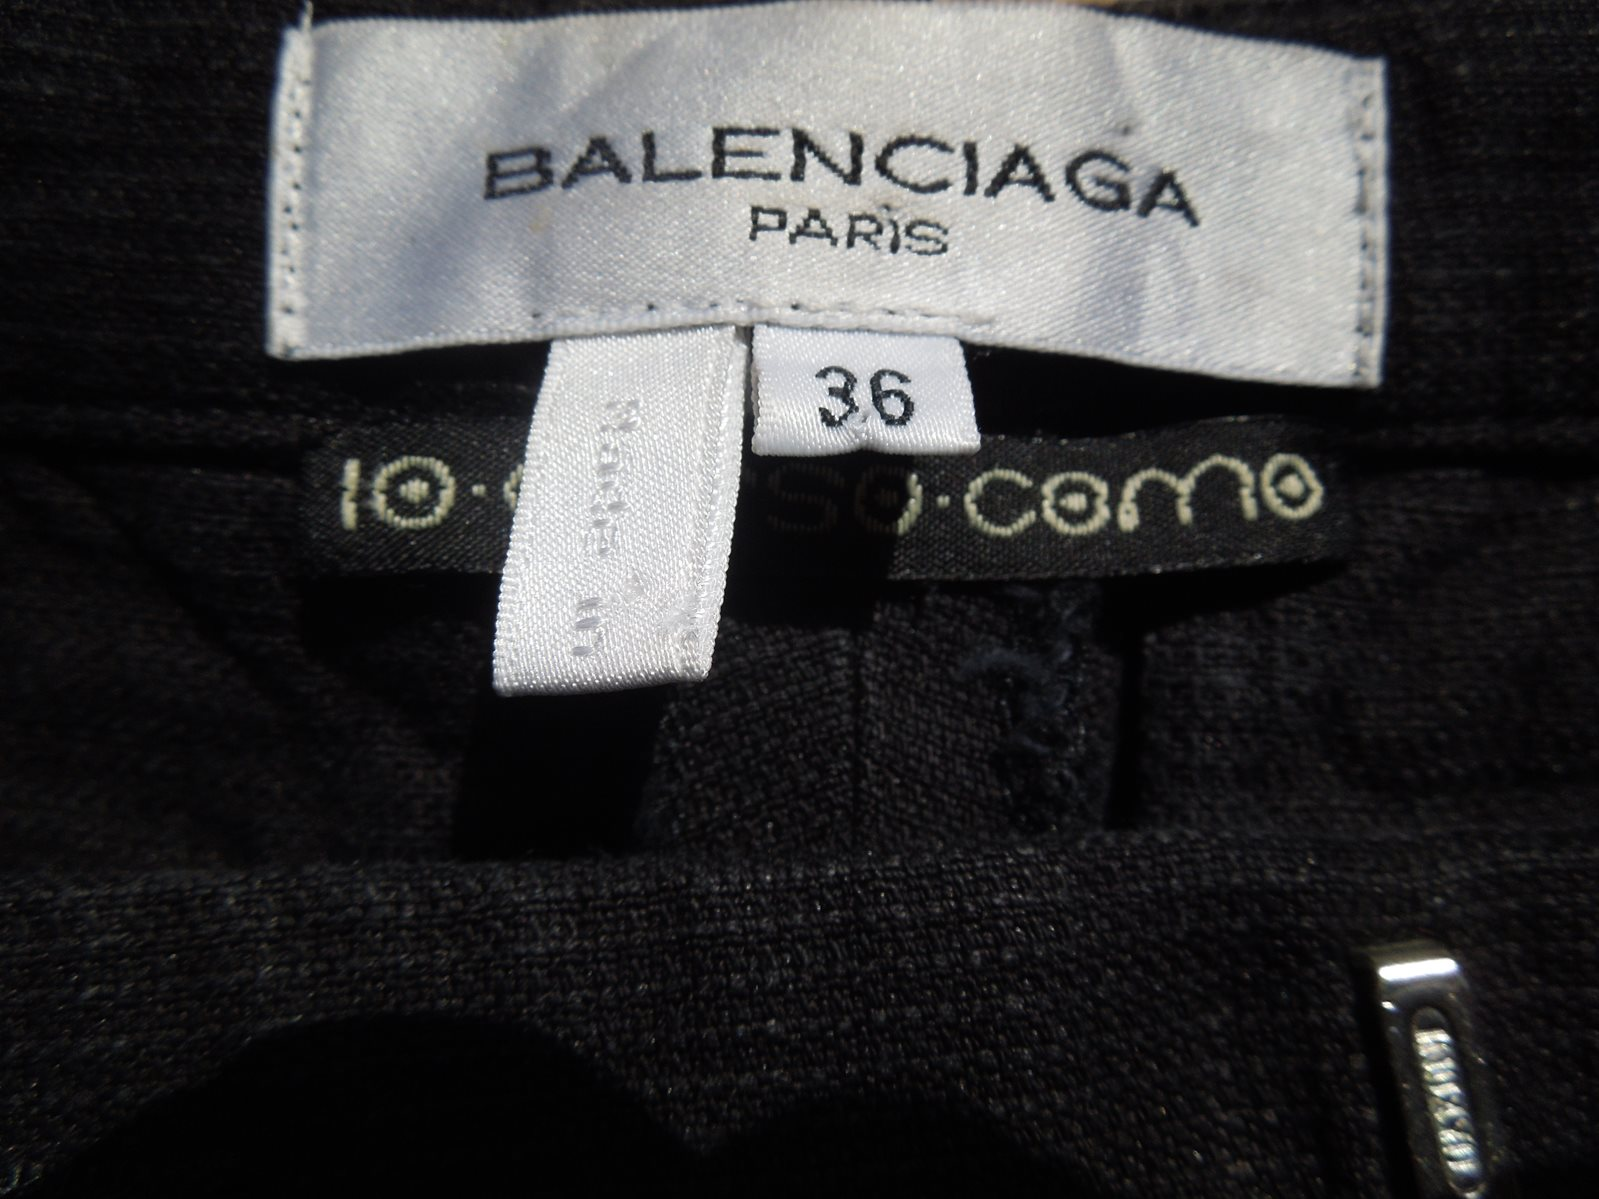 Balenciaga Paris - The Loft, London